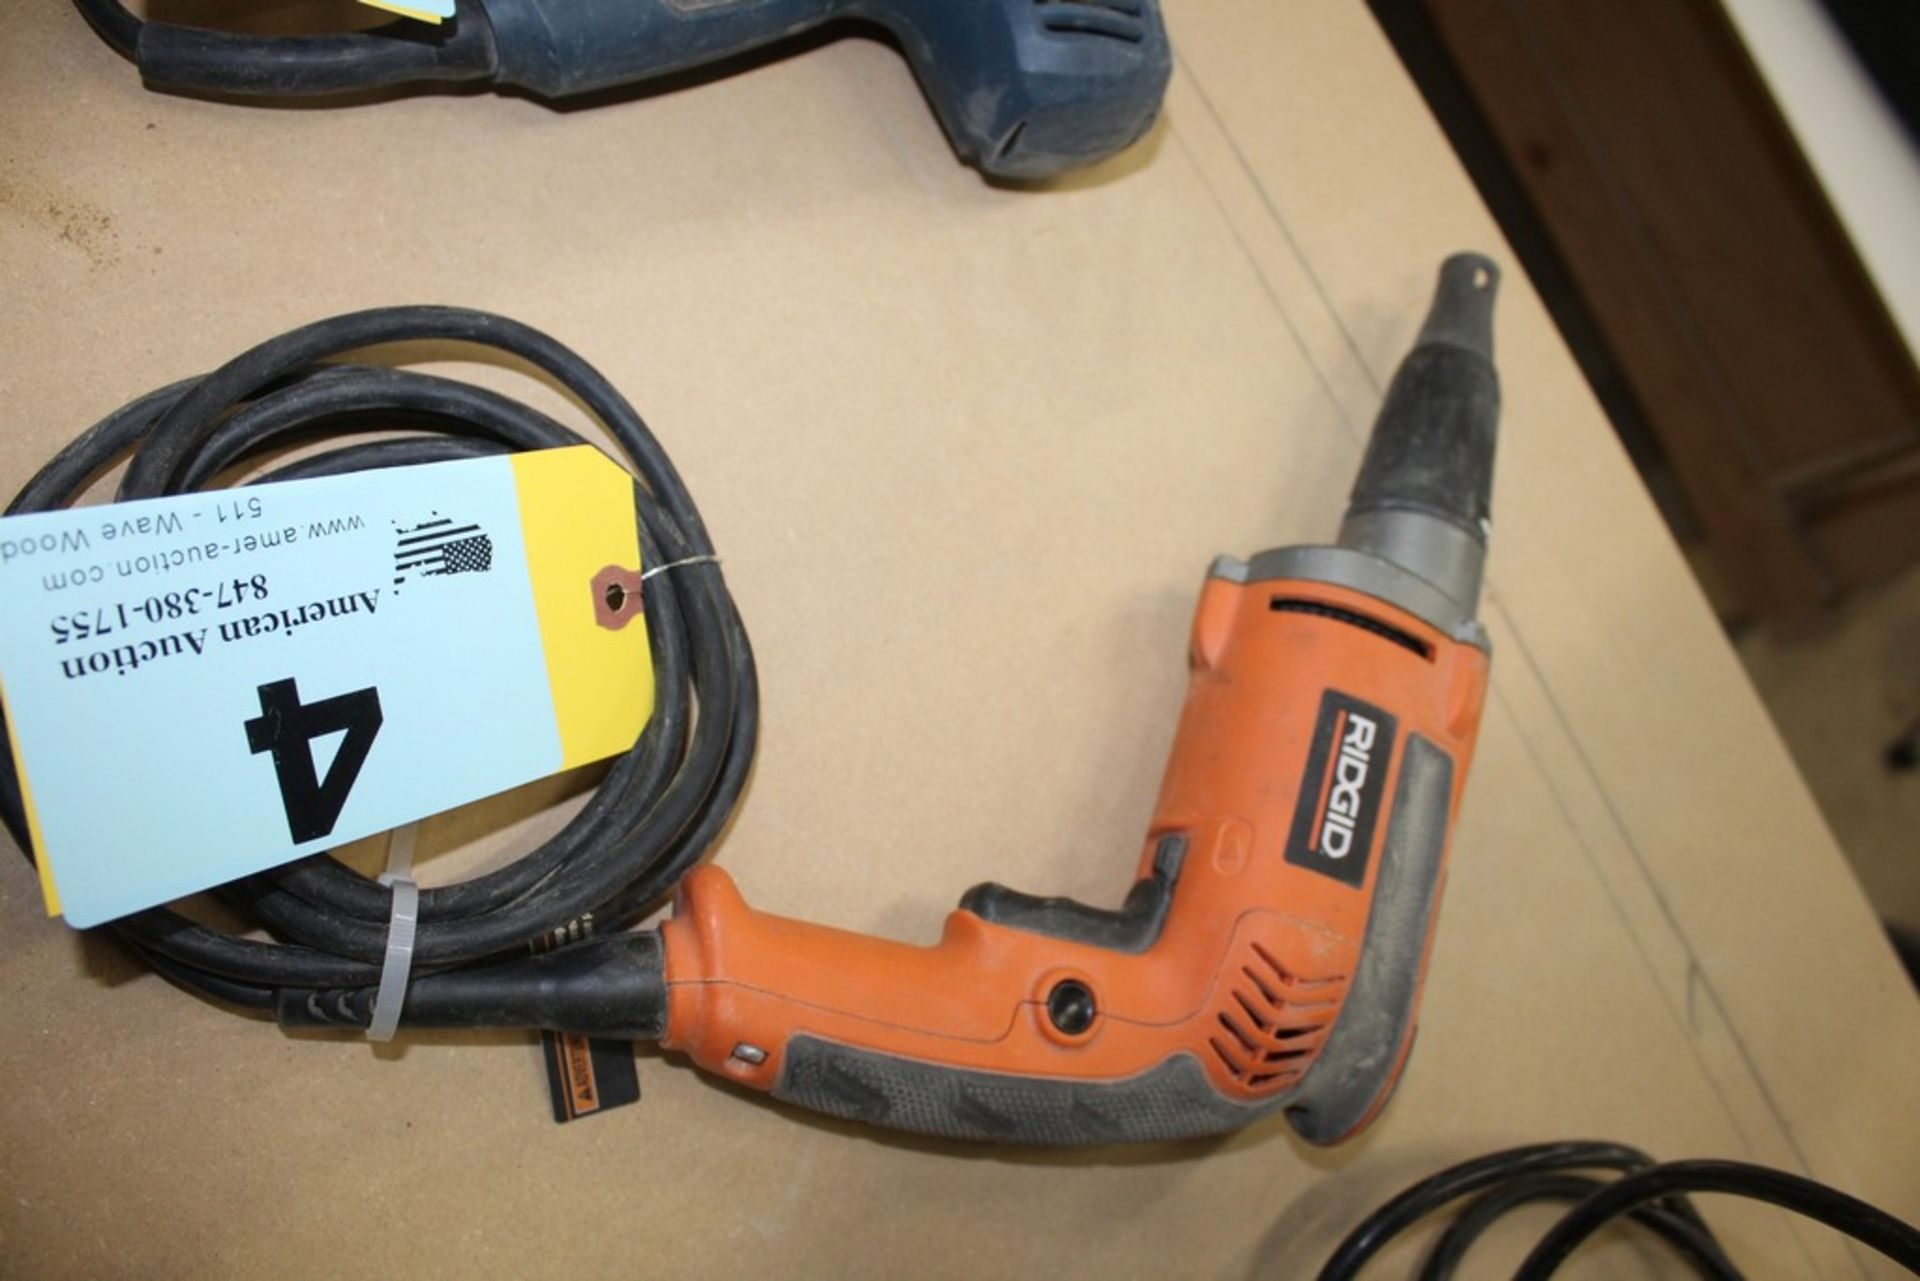 Lot 4 - RIDGID MODEL R6000-1 DRYWALL SCREW GUN